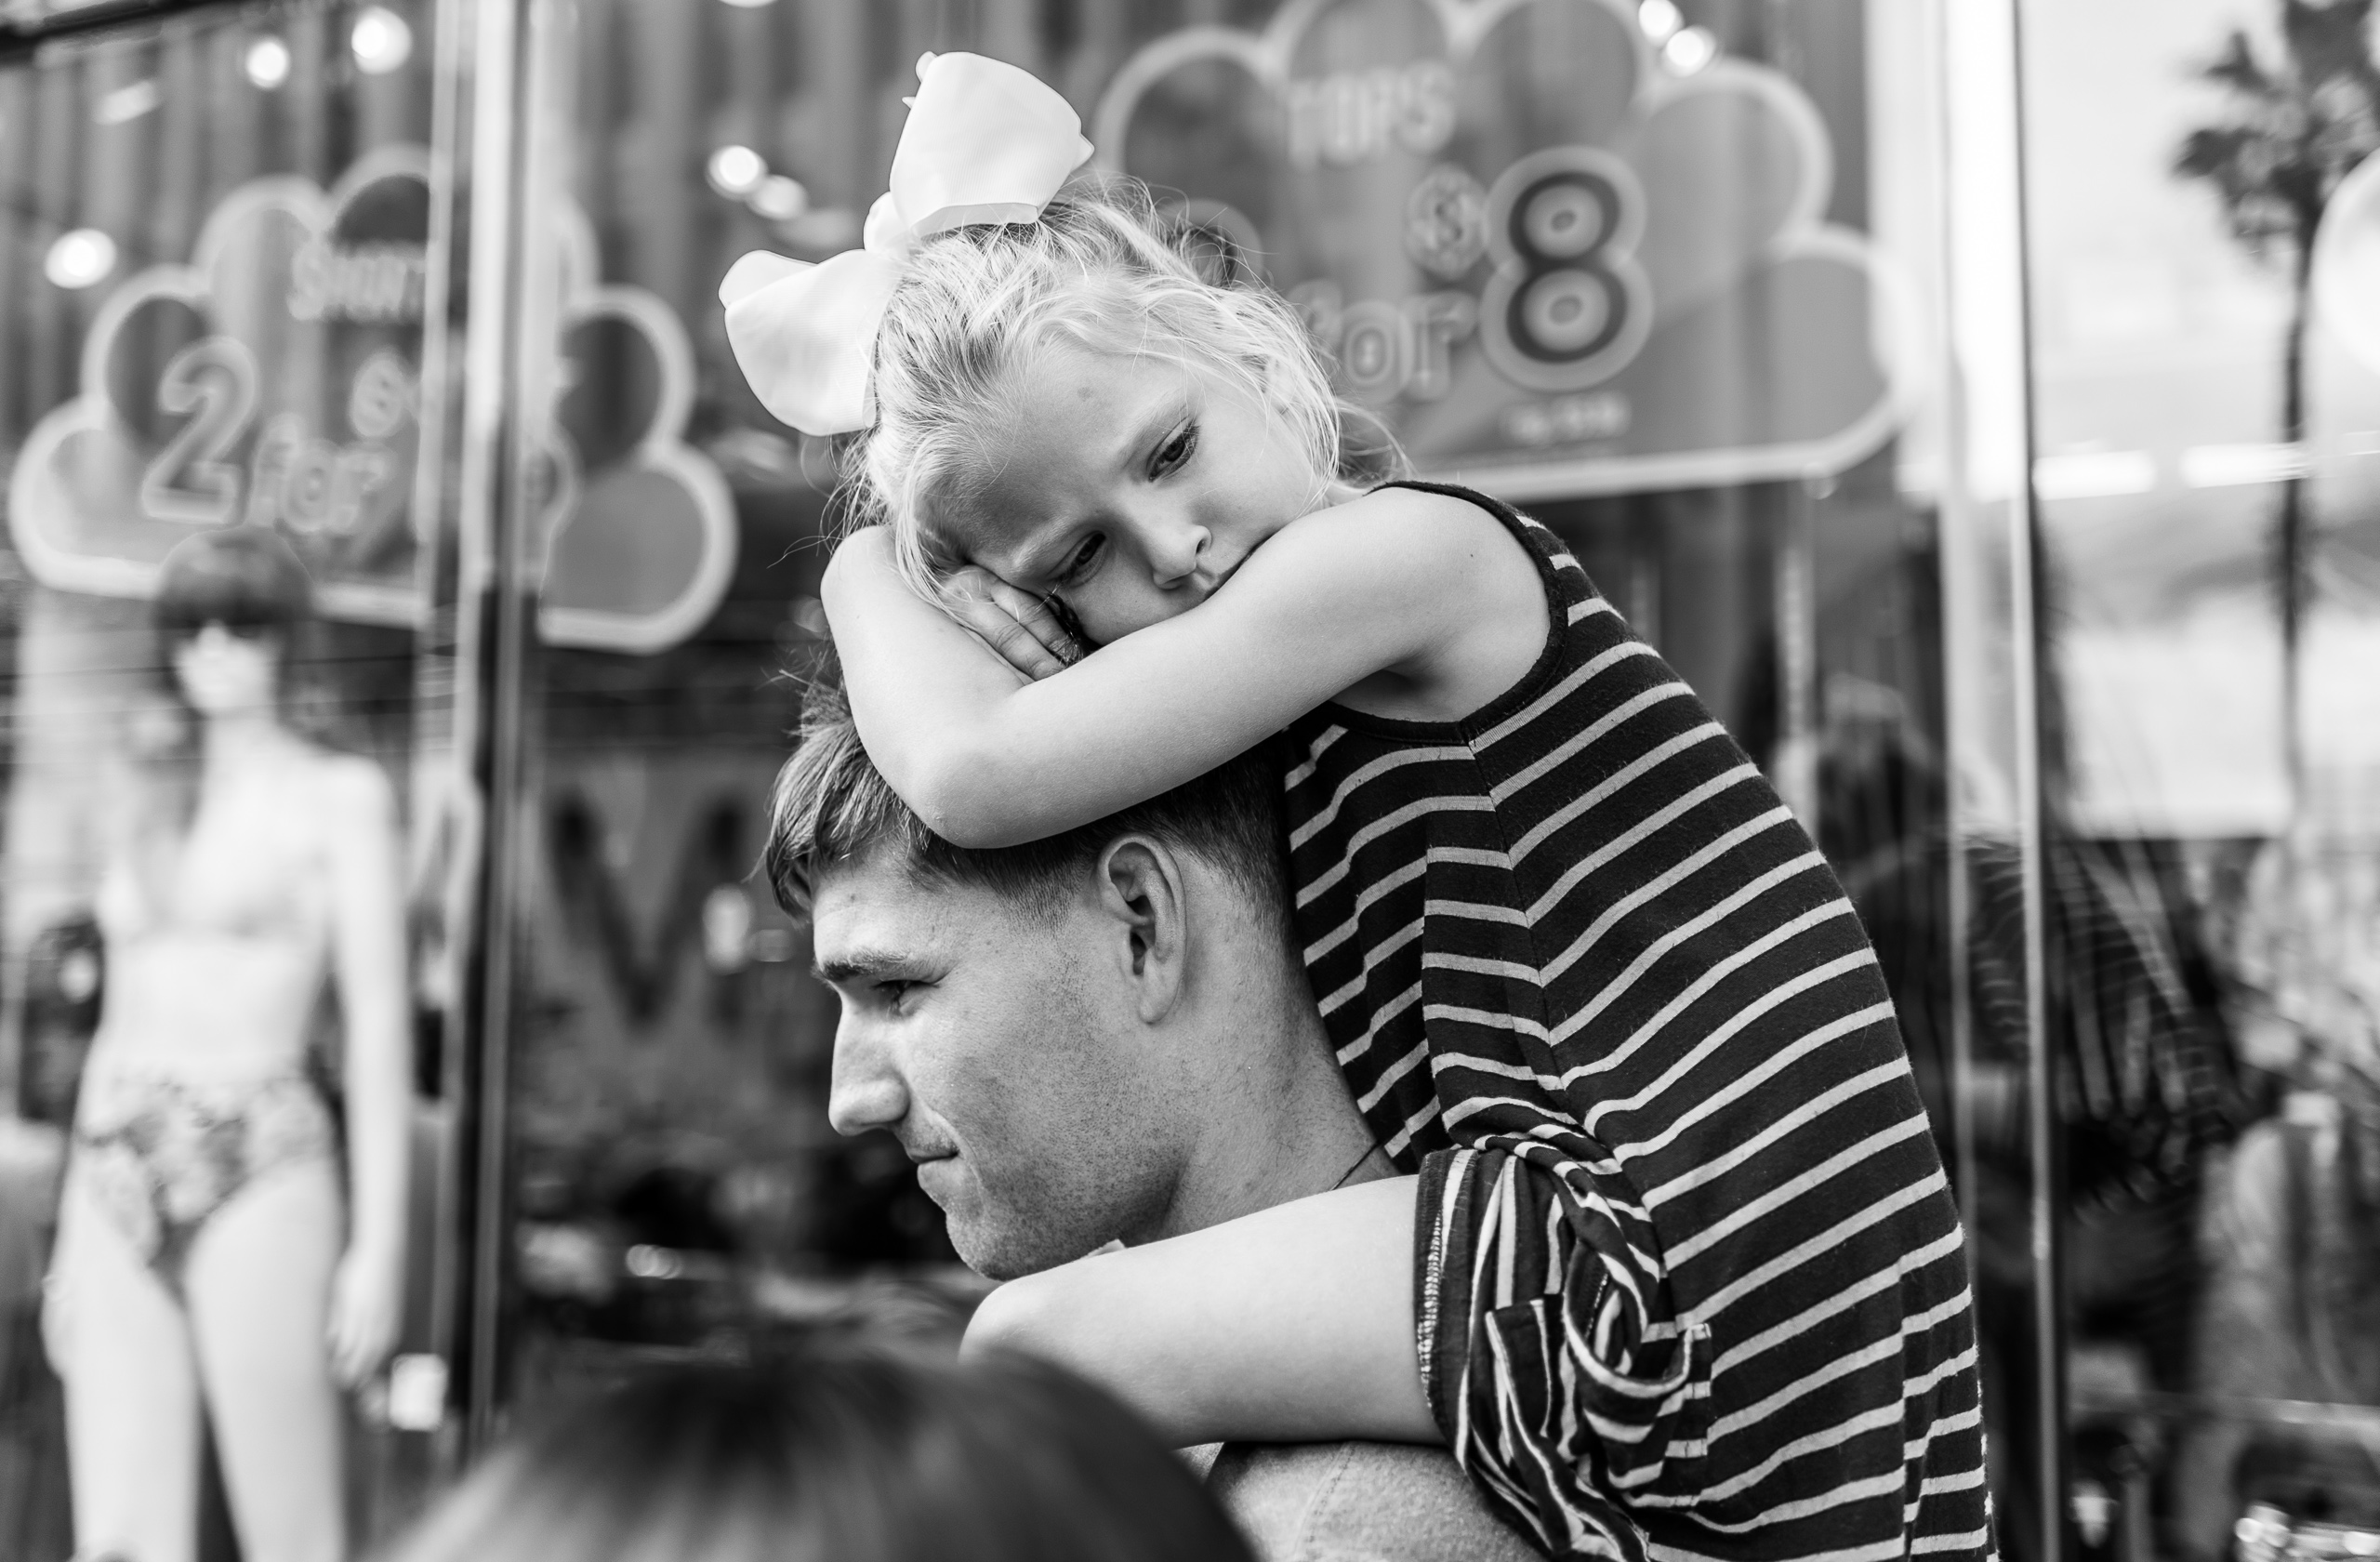 a young dad carries his daughter on his shoulders. She has her arms on top of his head and lays her head on his